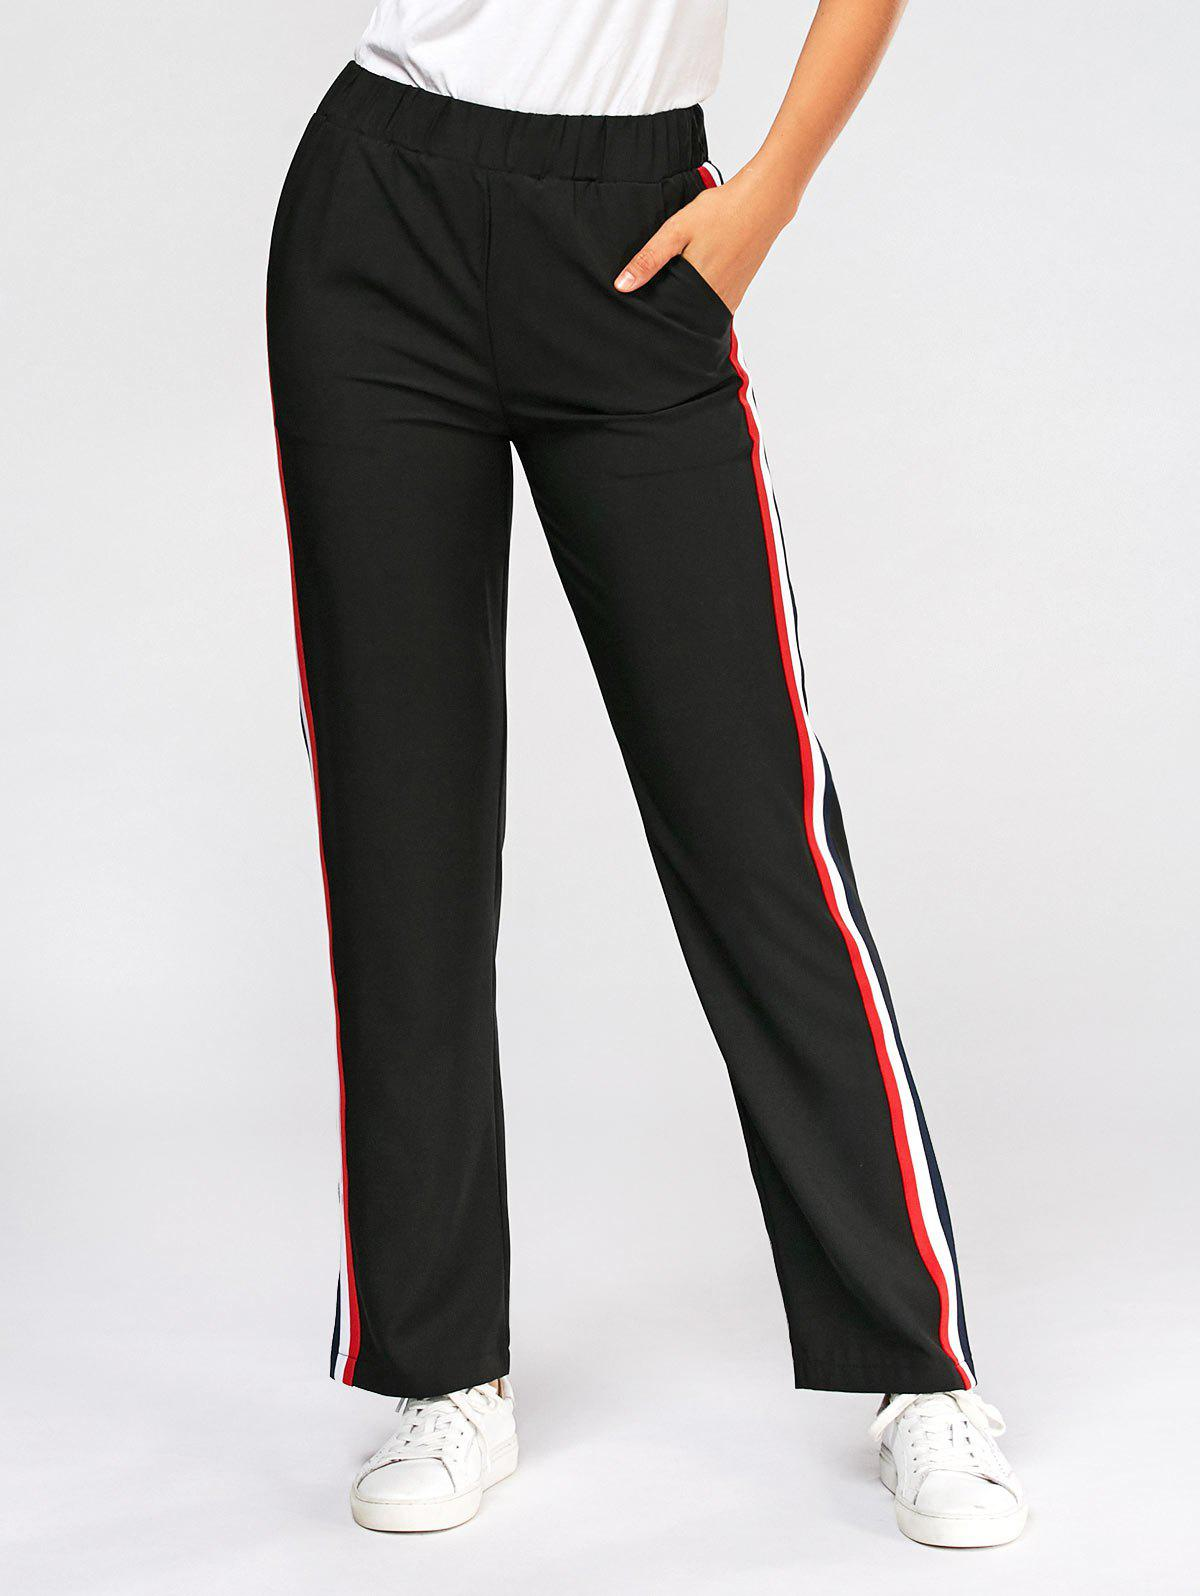 Store Side Color Block Elastic High Waist Pants